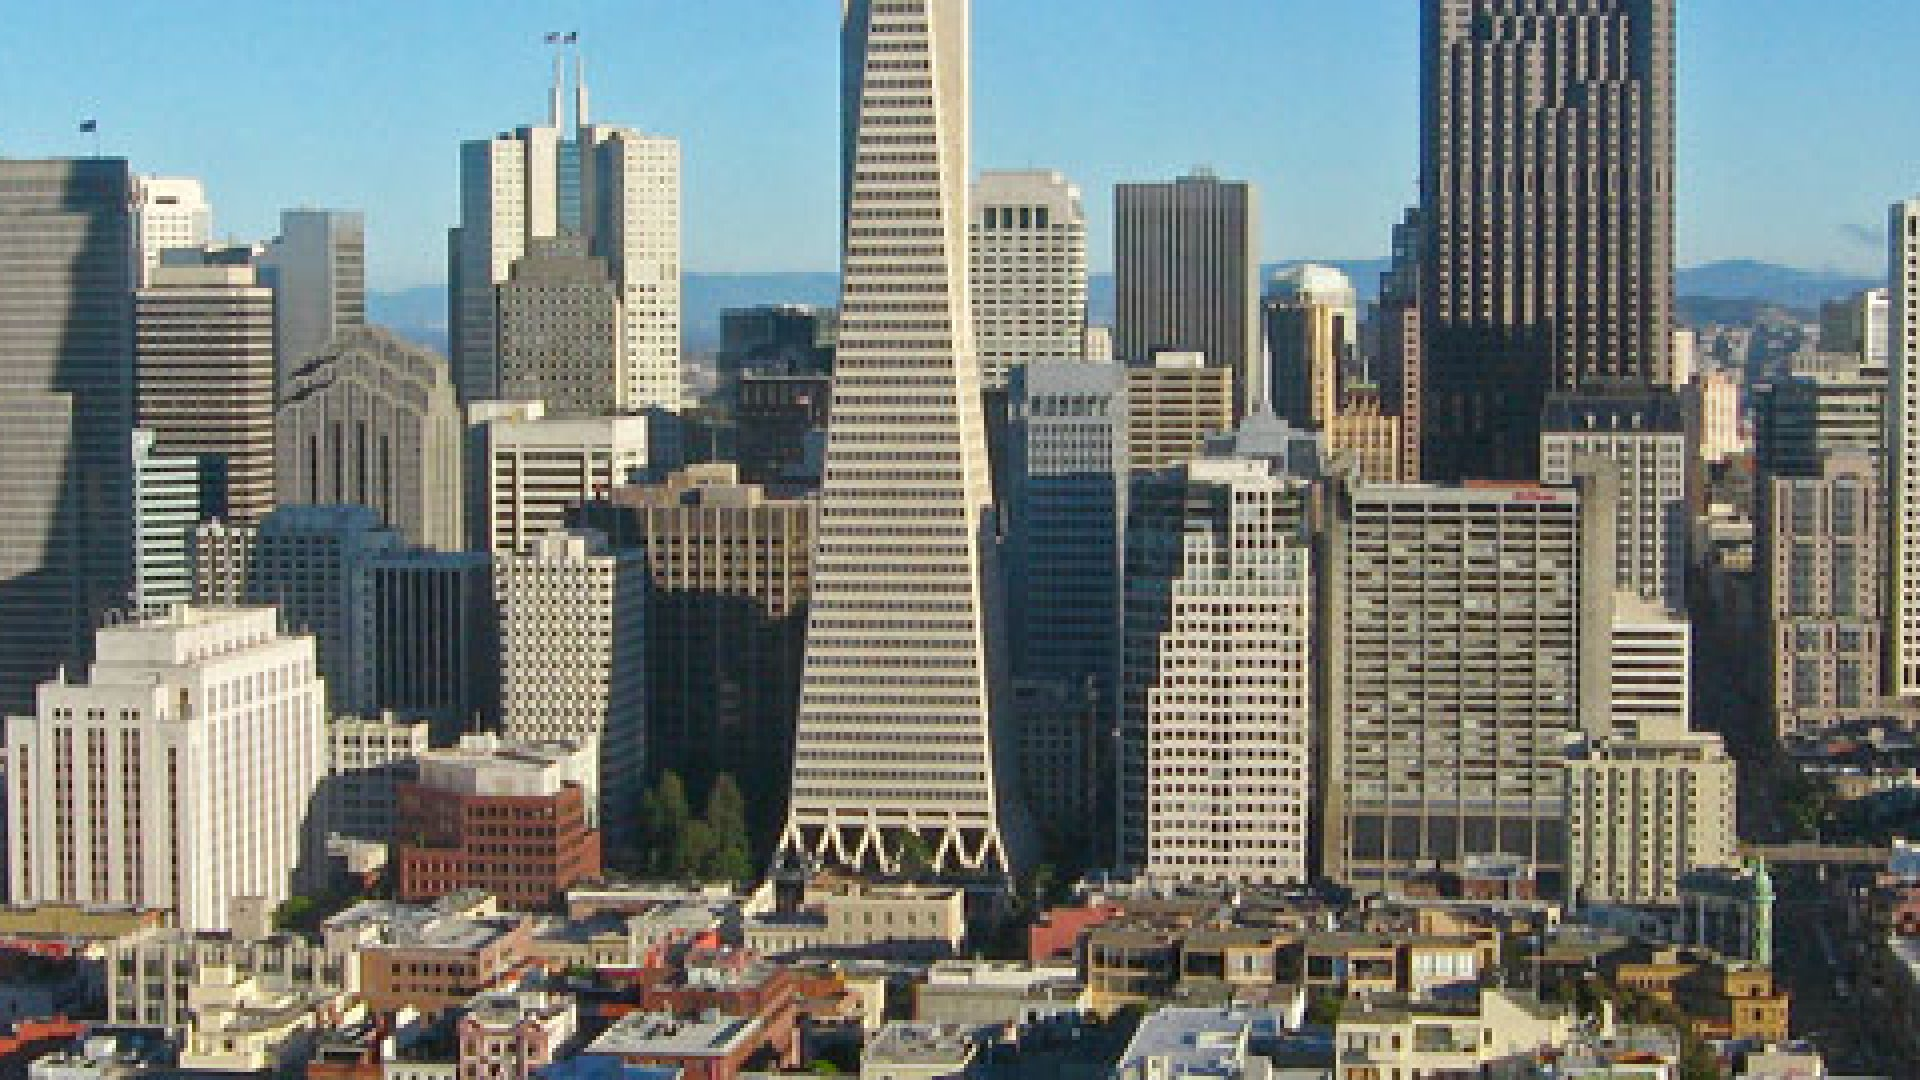 A view of San Francisco, where commercial real estate is booming.